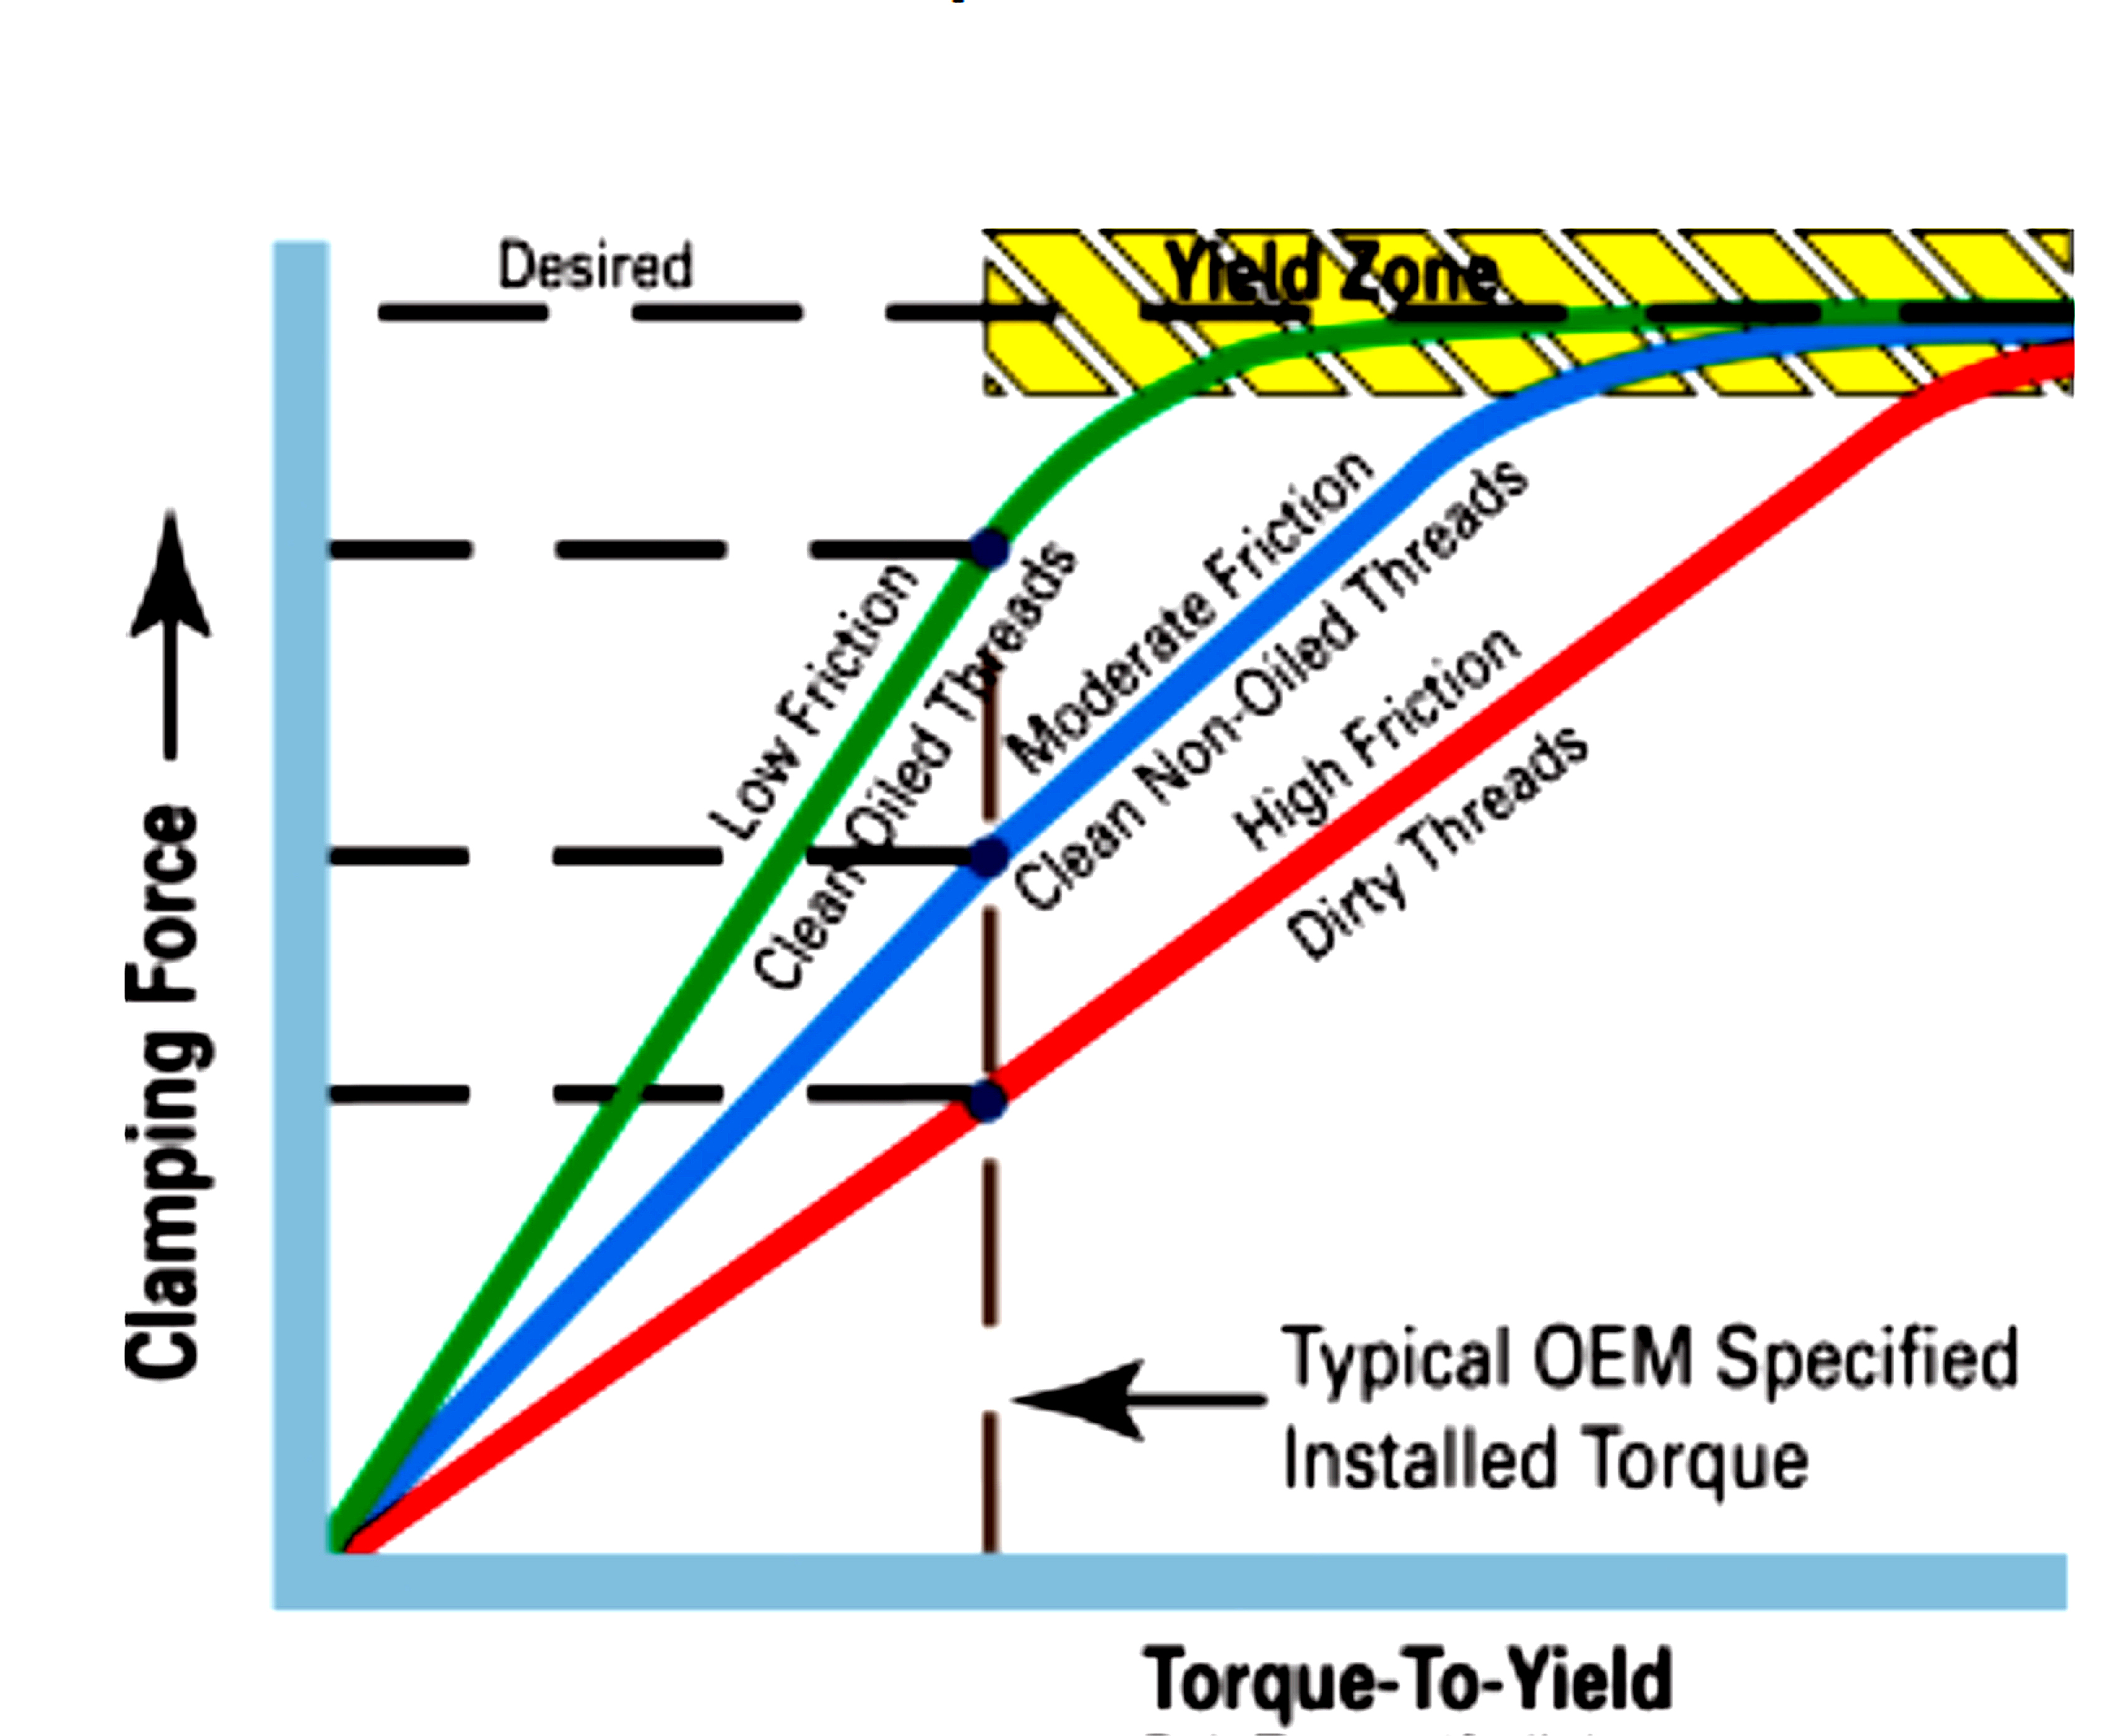 Ask Away! with Jeff Smith: The Truth Behind Torque-to-Yield